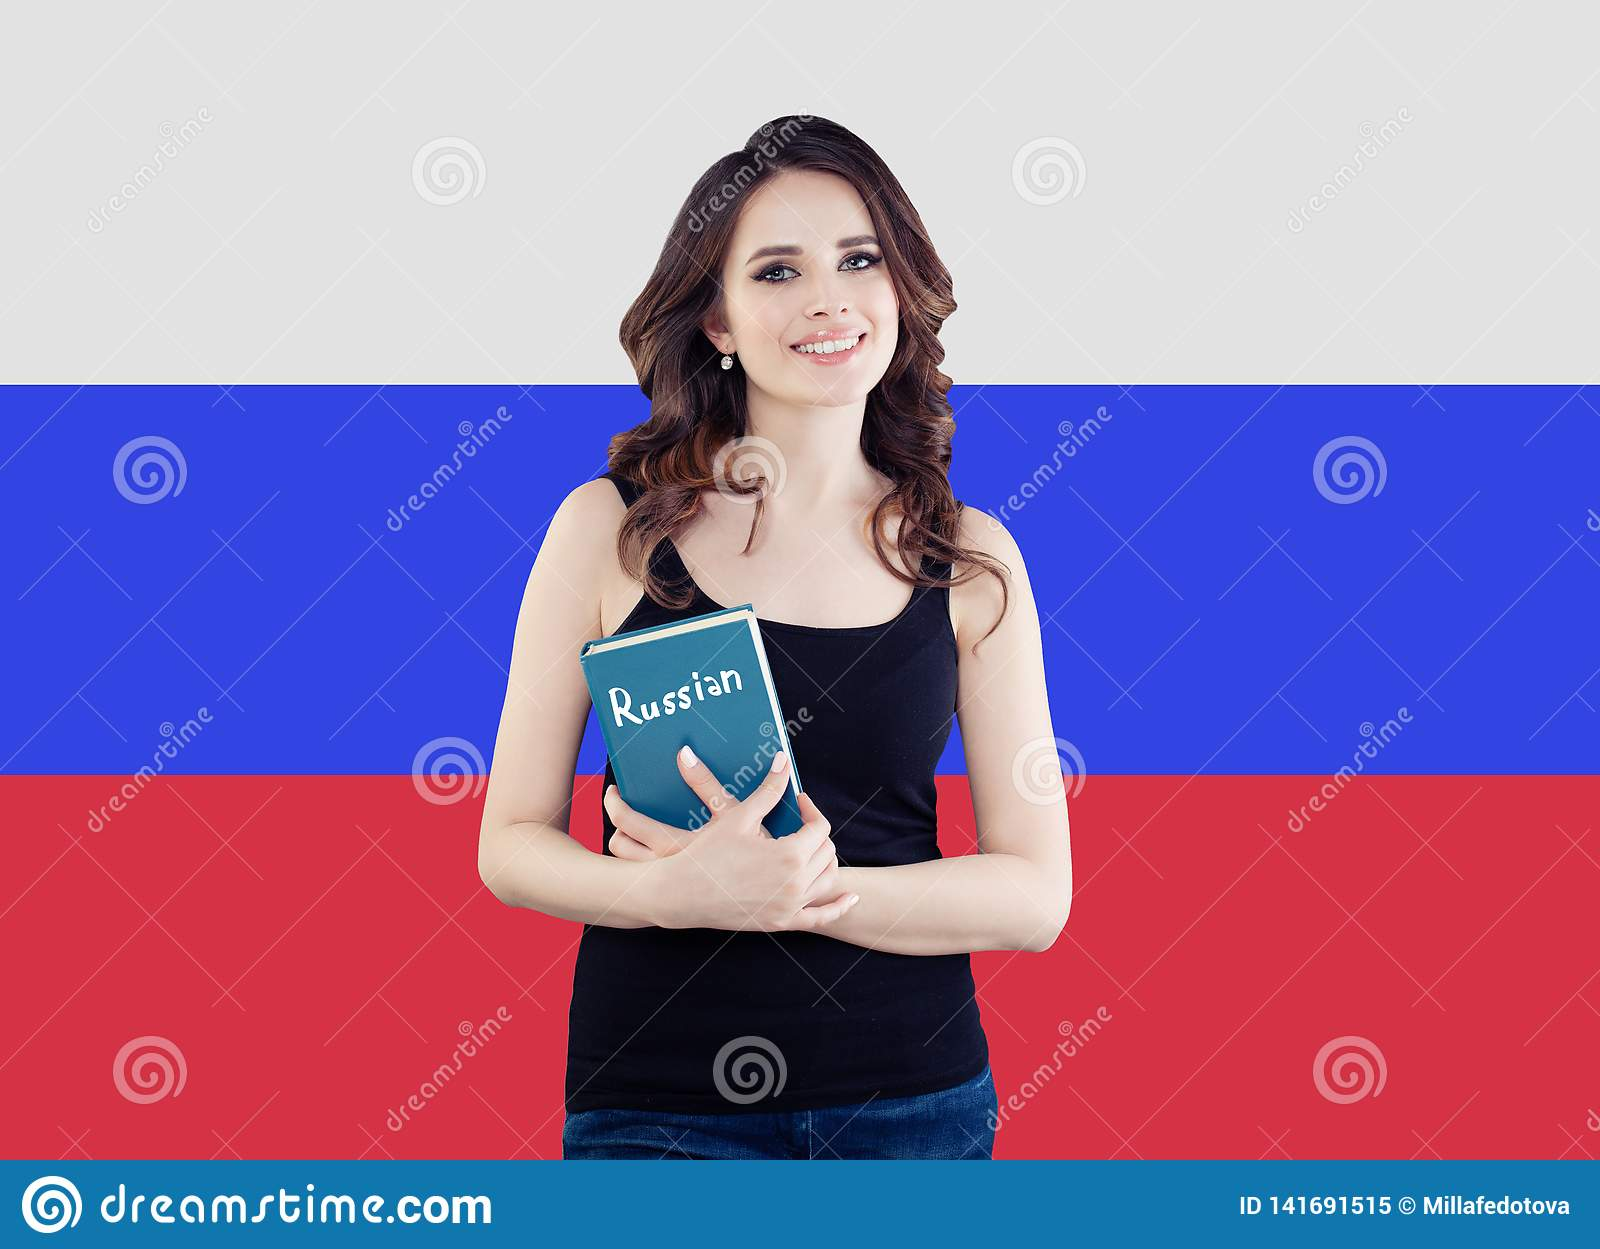 Beautiful happy woman student with textbook on the Russian Federation flag background. Learn russian language